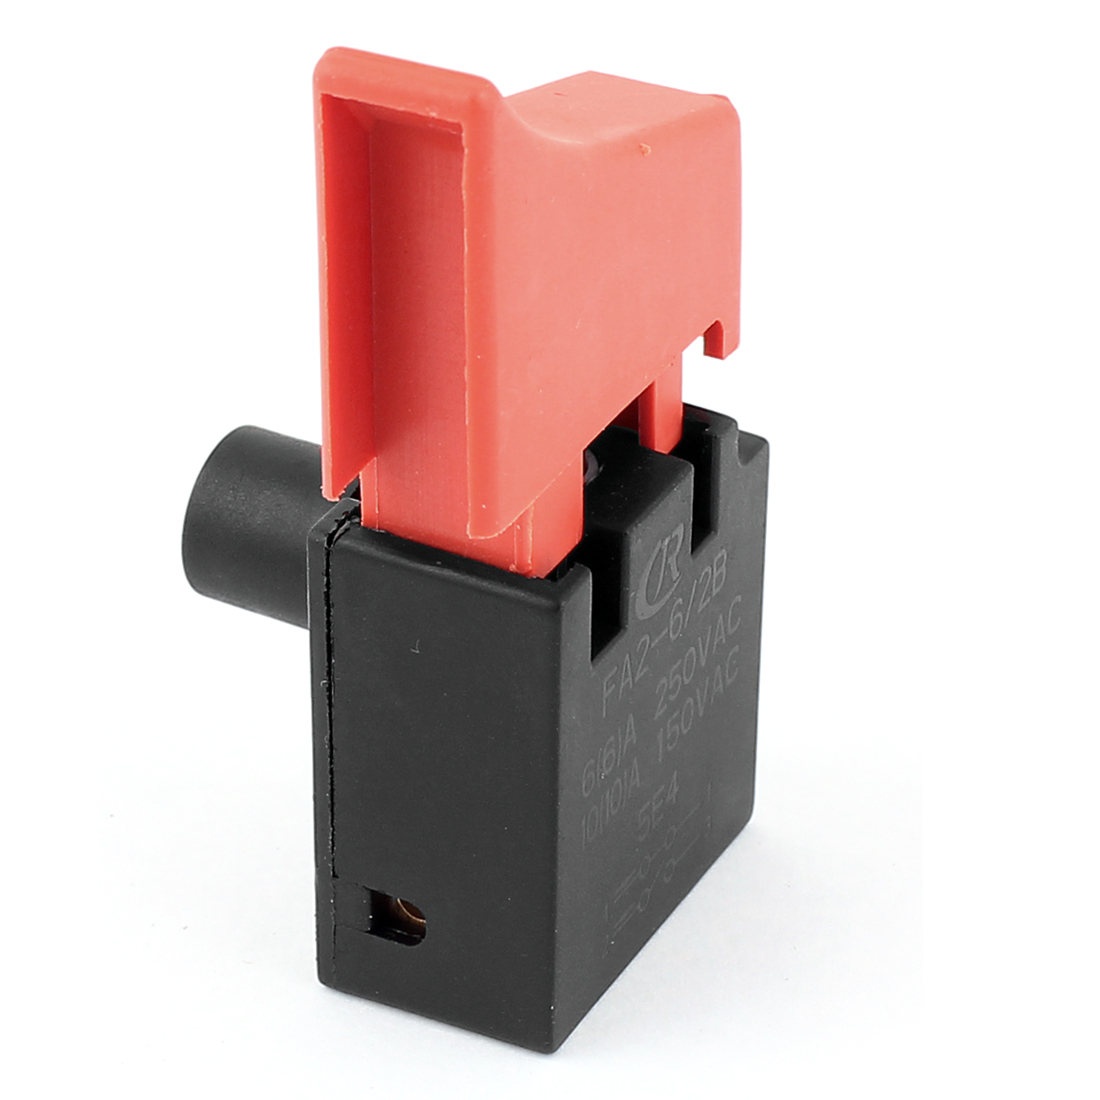 AC 6A/250V 10A/150V Self Locking Power Speed Control Trigger Switch